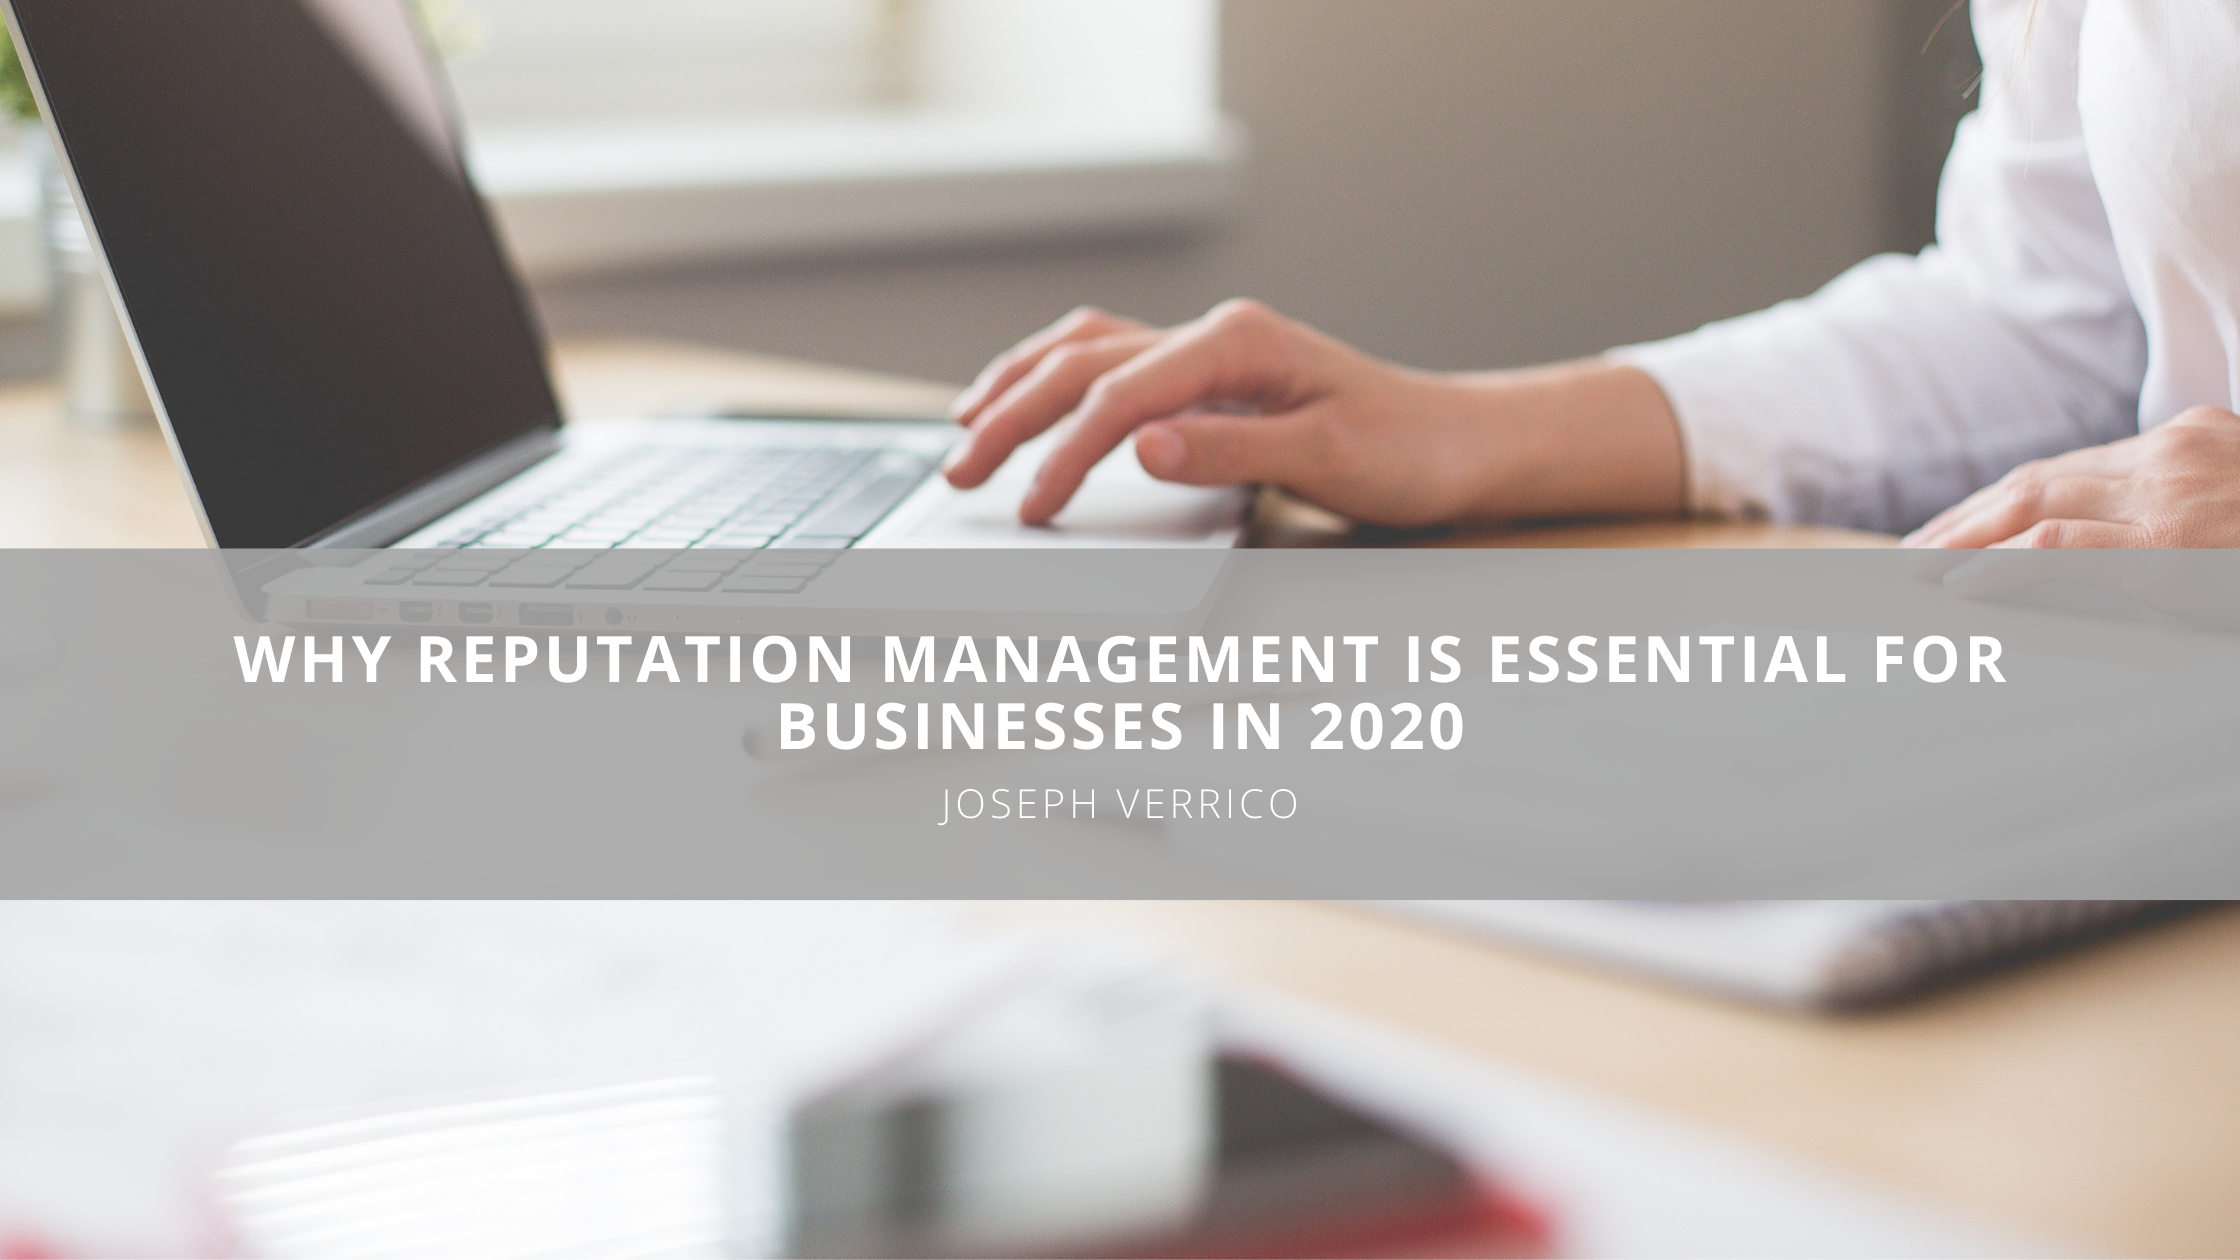 Why Reputation Management is Essential for Businesses in 2020